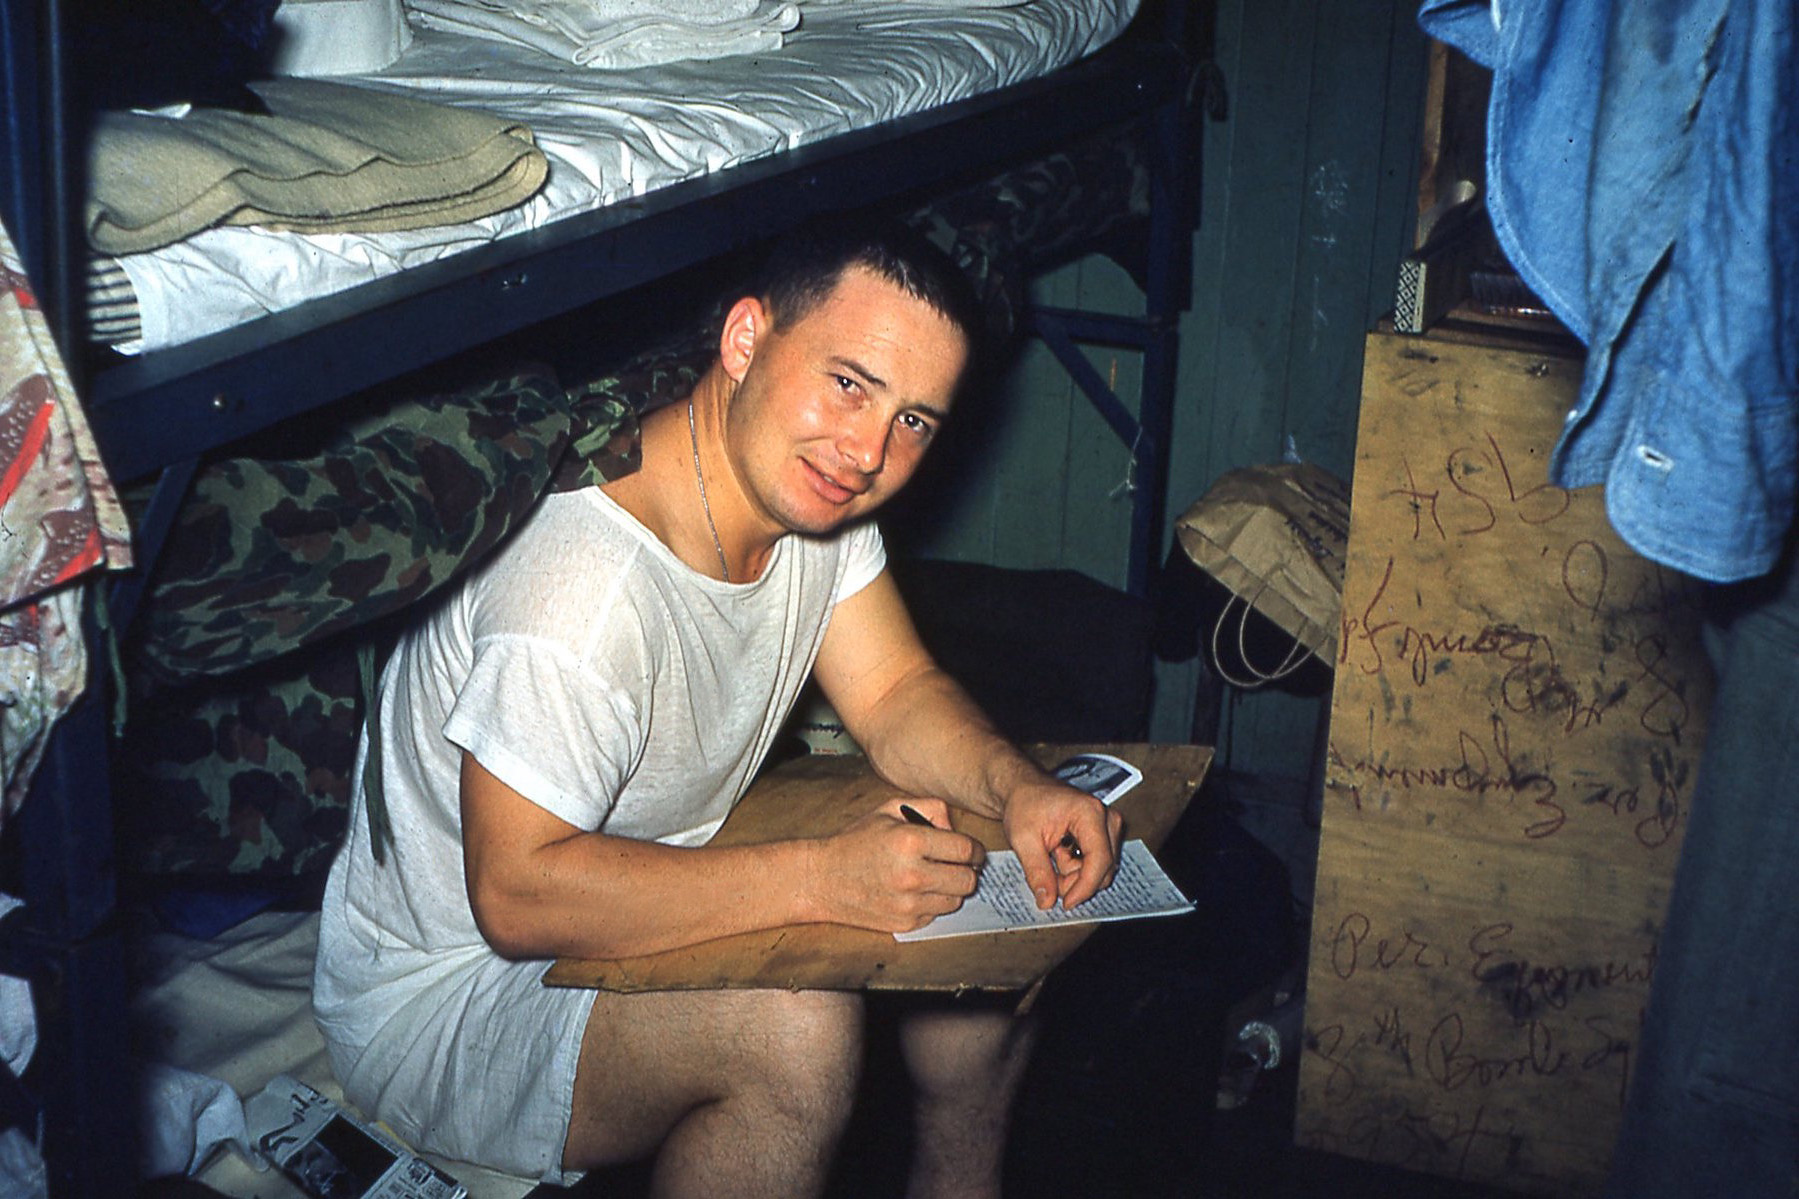 Bob writing home